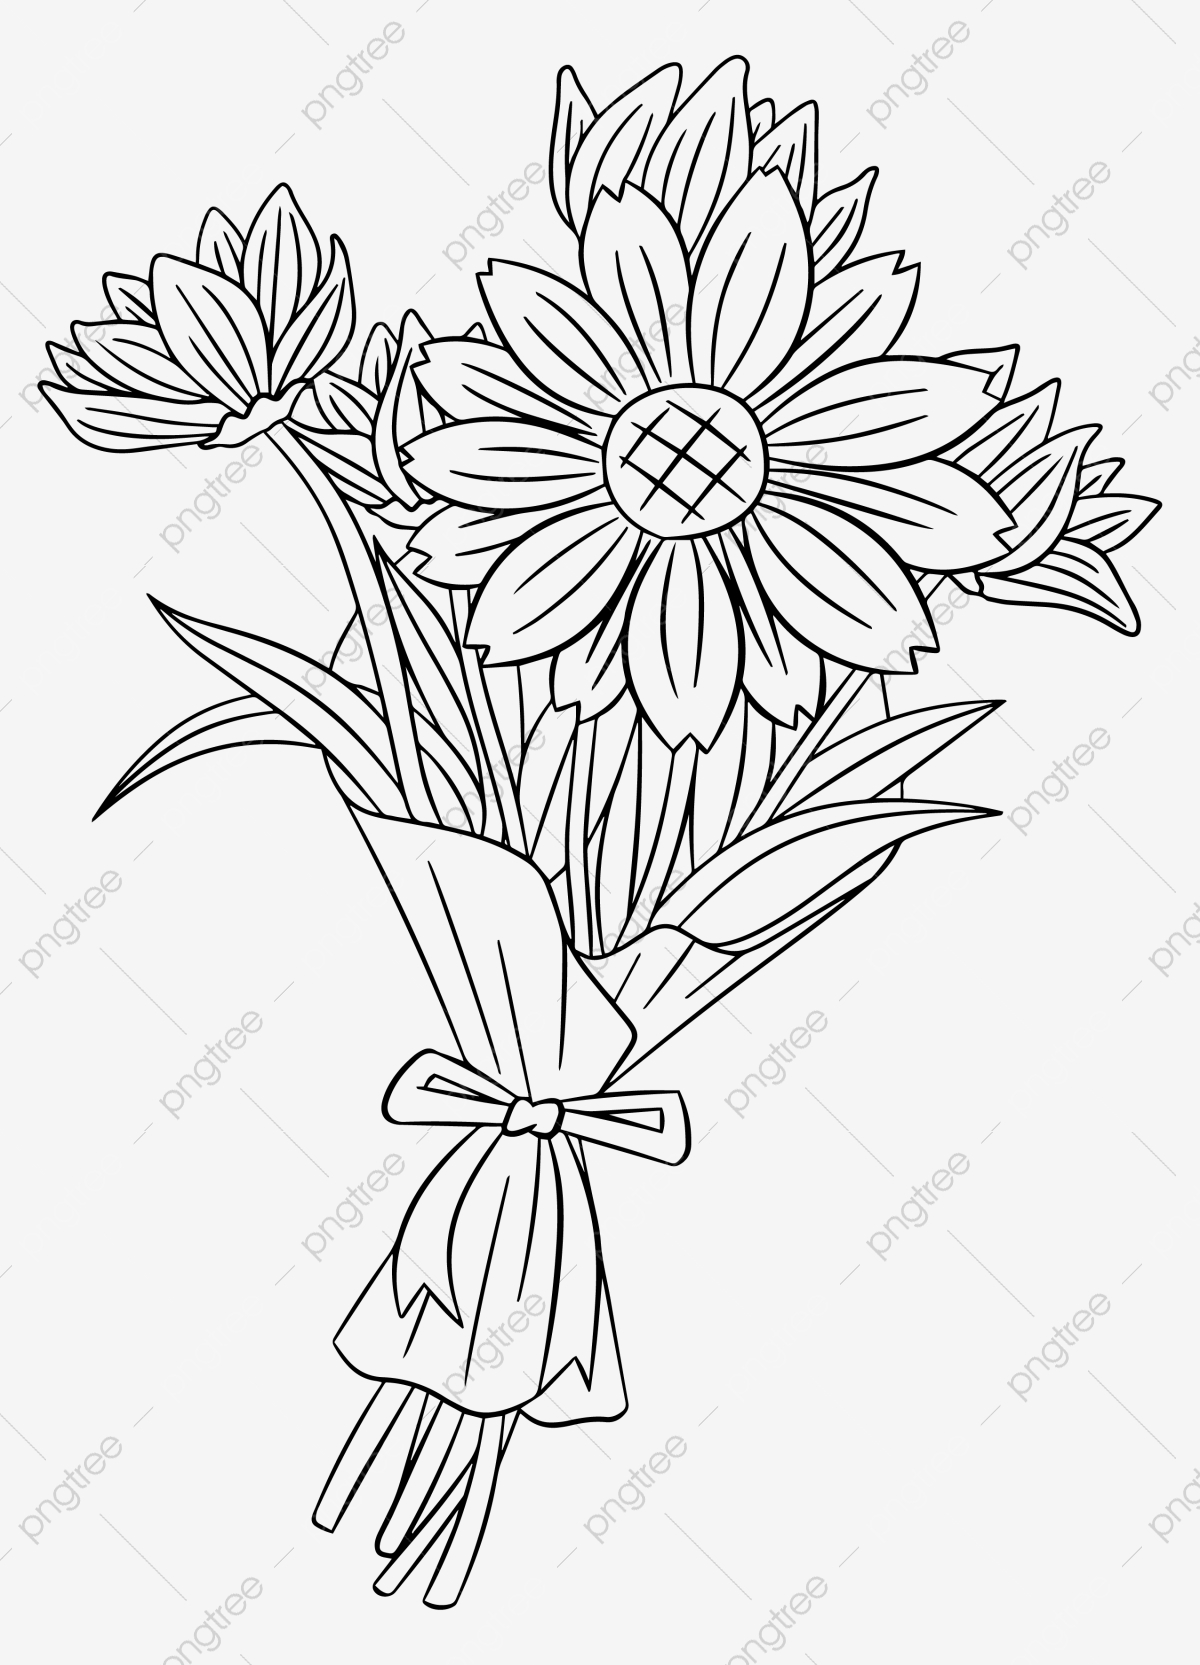 Hand Drawn Simple Daisy Bouquet Clipart Black And White Line Drawing Flowers Png And Vector With Transparent Background For Free Download